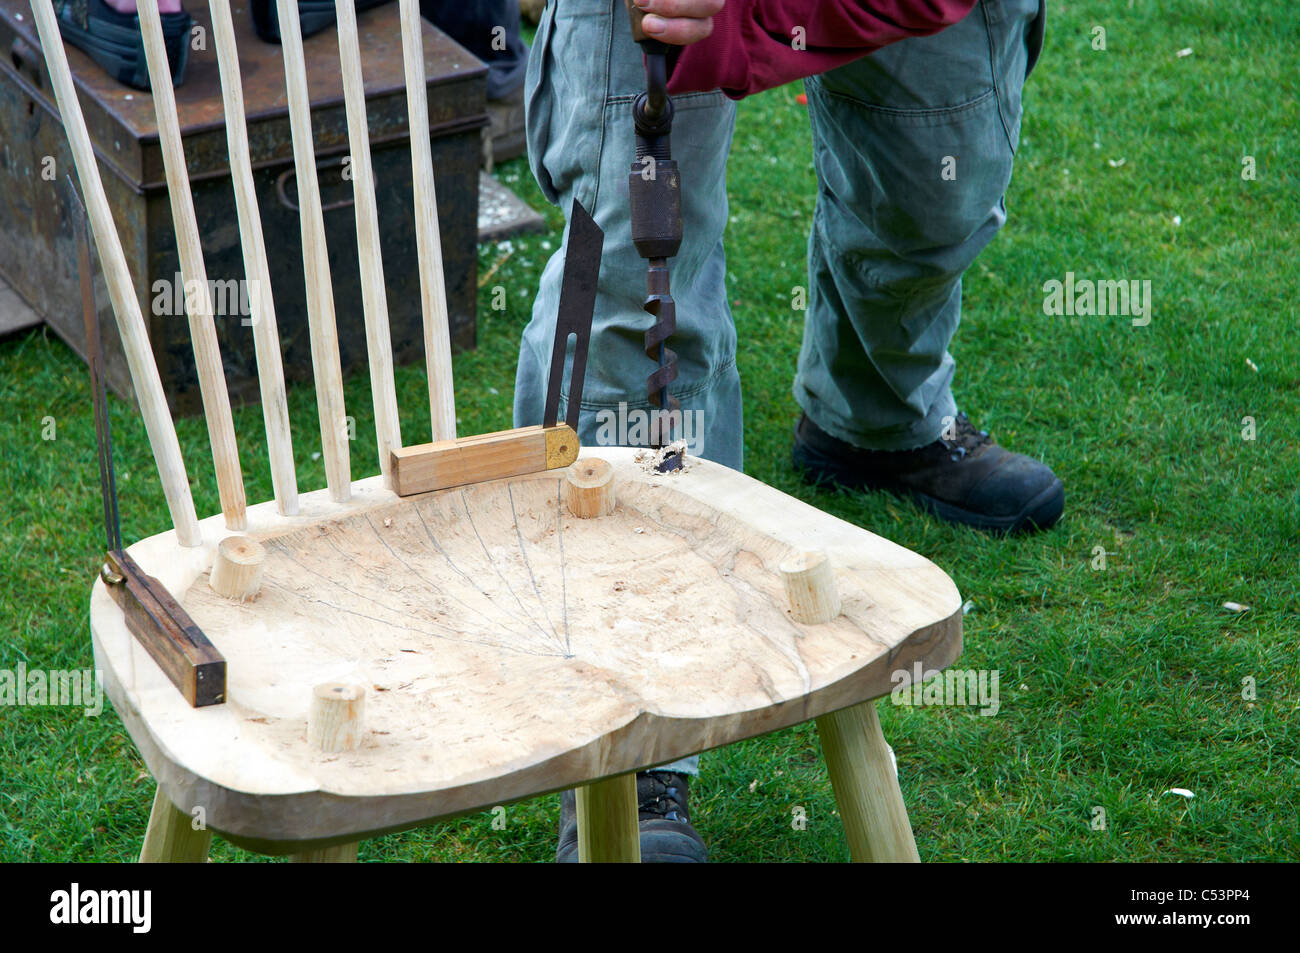 Bodger Or Traditional Furniture Maker Drilling A Hole In The Seat Of A  Rustic Chair During A Woodland Crafts Demonstration.